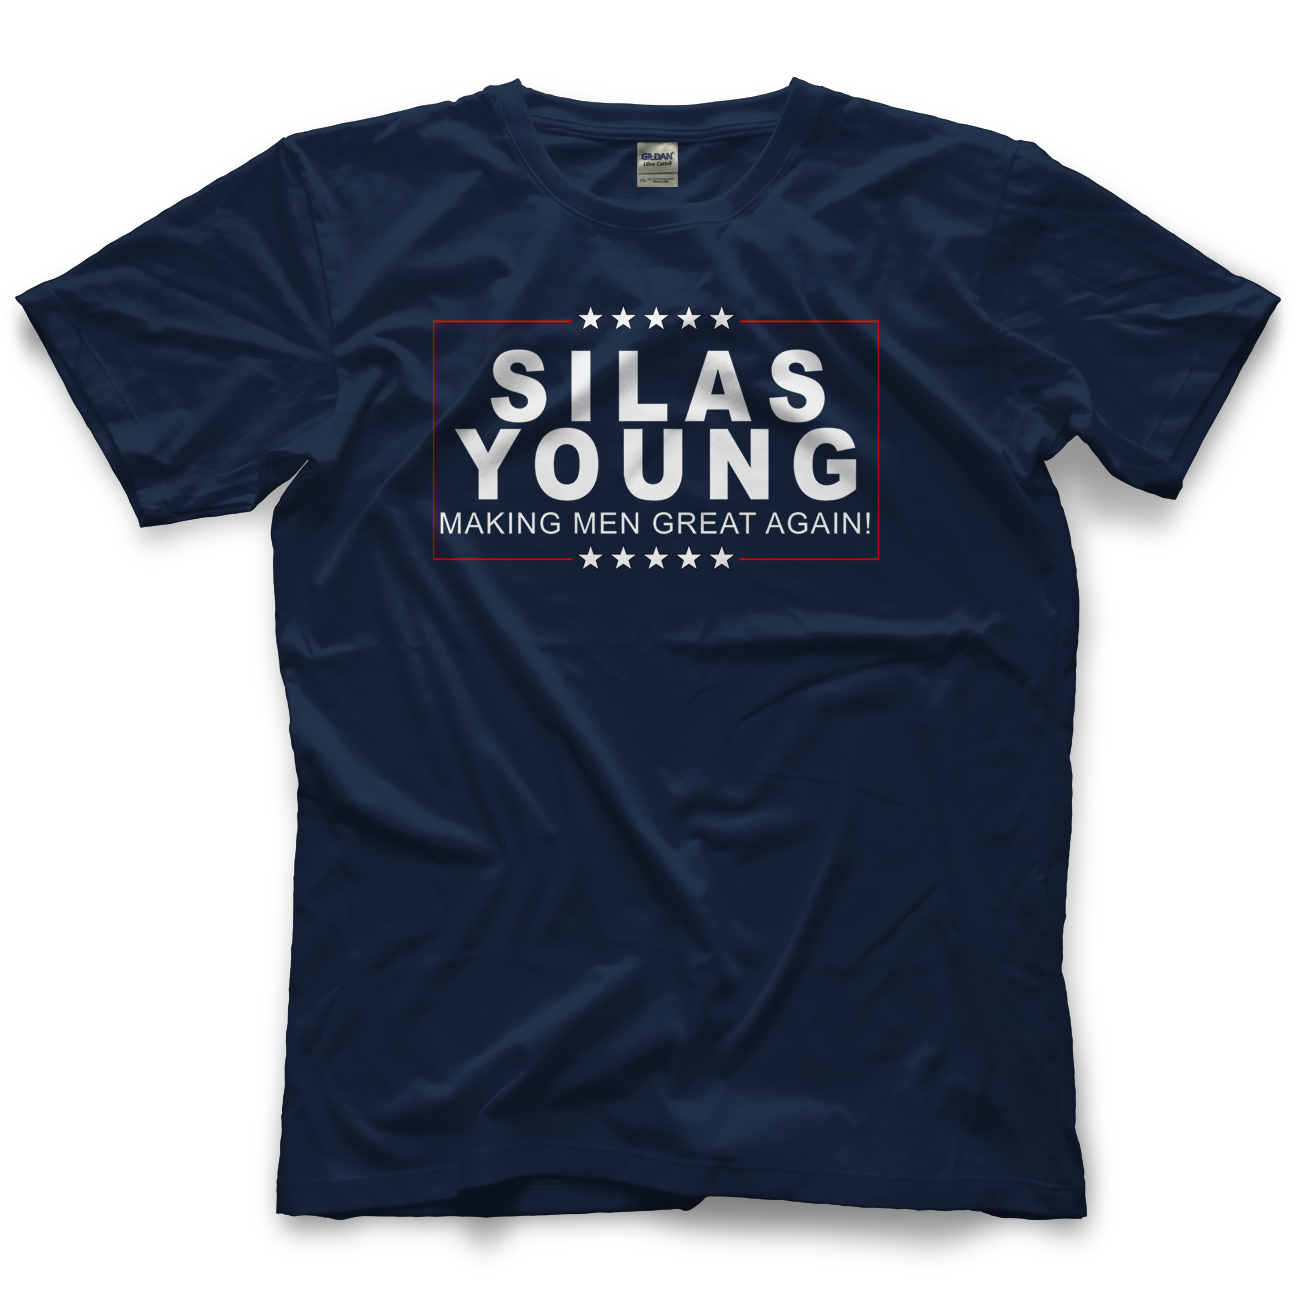 Silas Young Make Men Great Again T-shirt